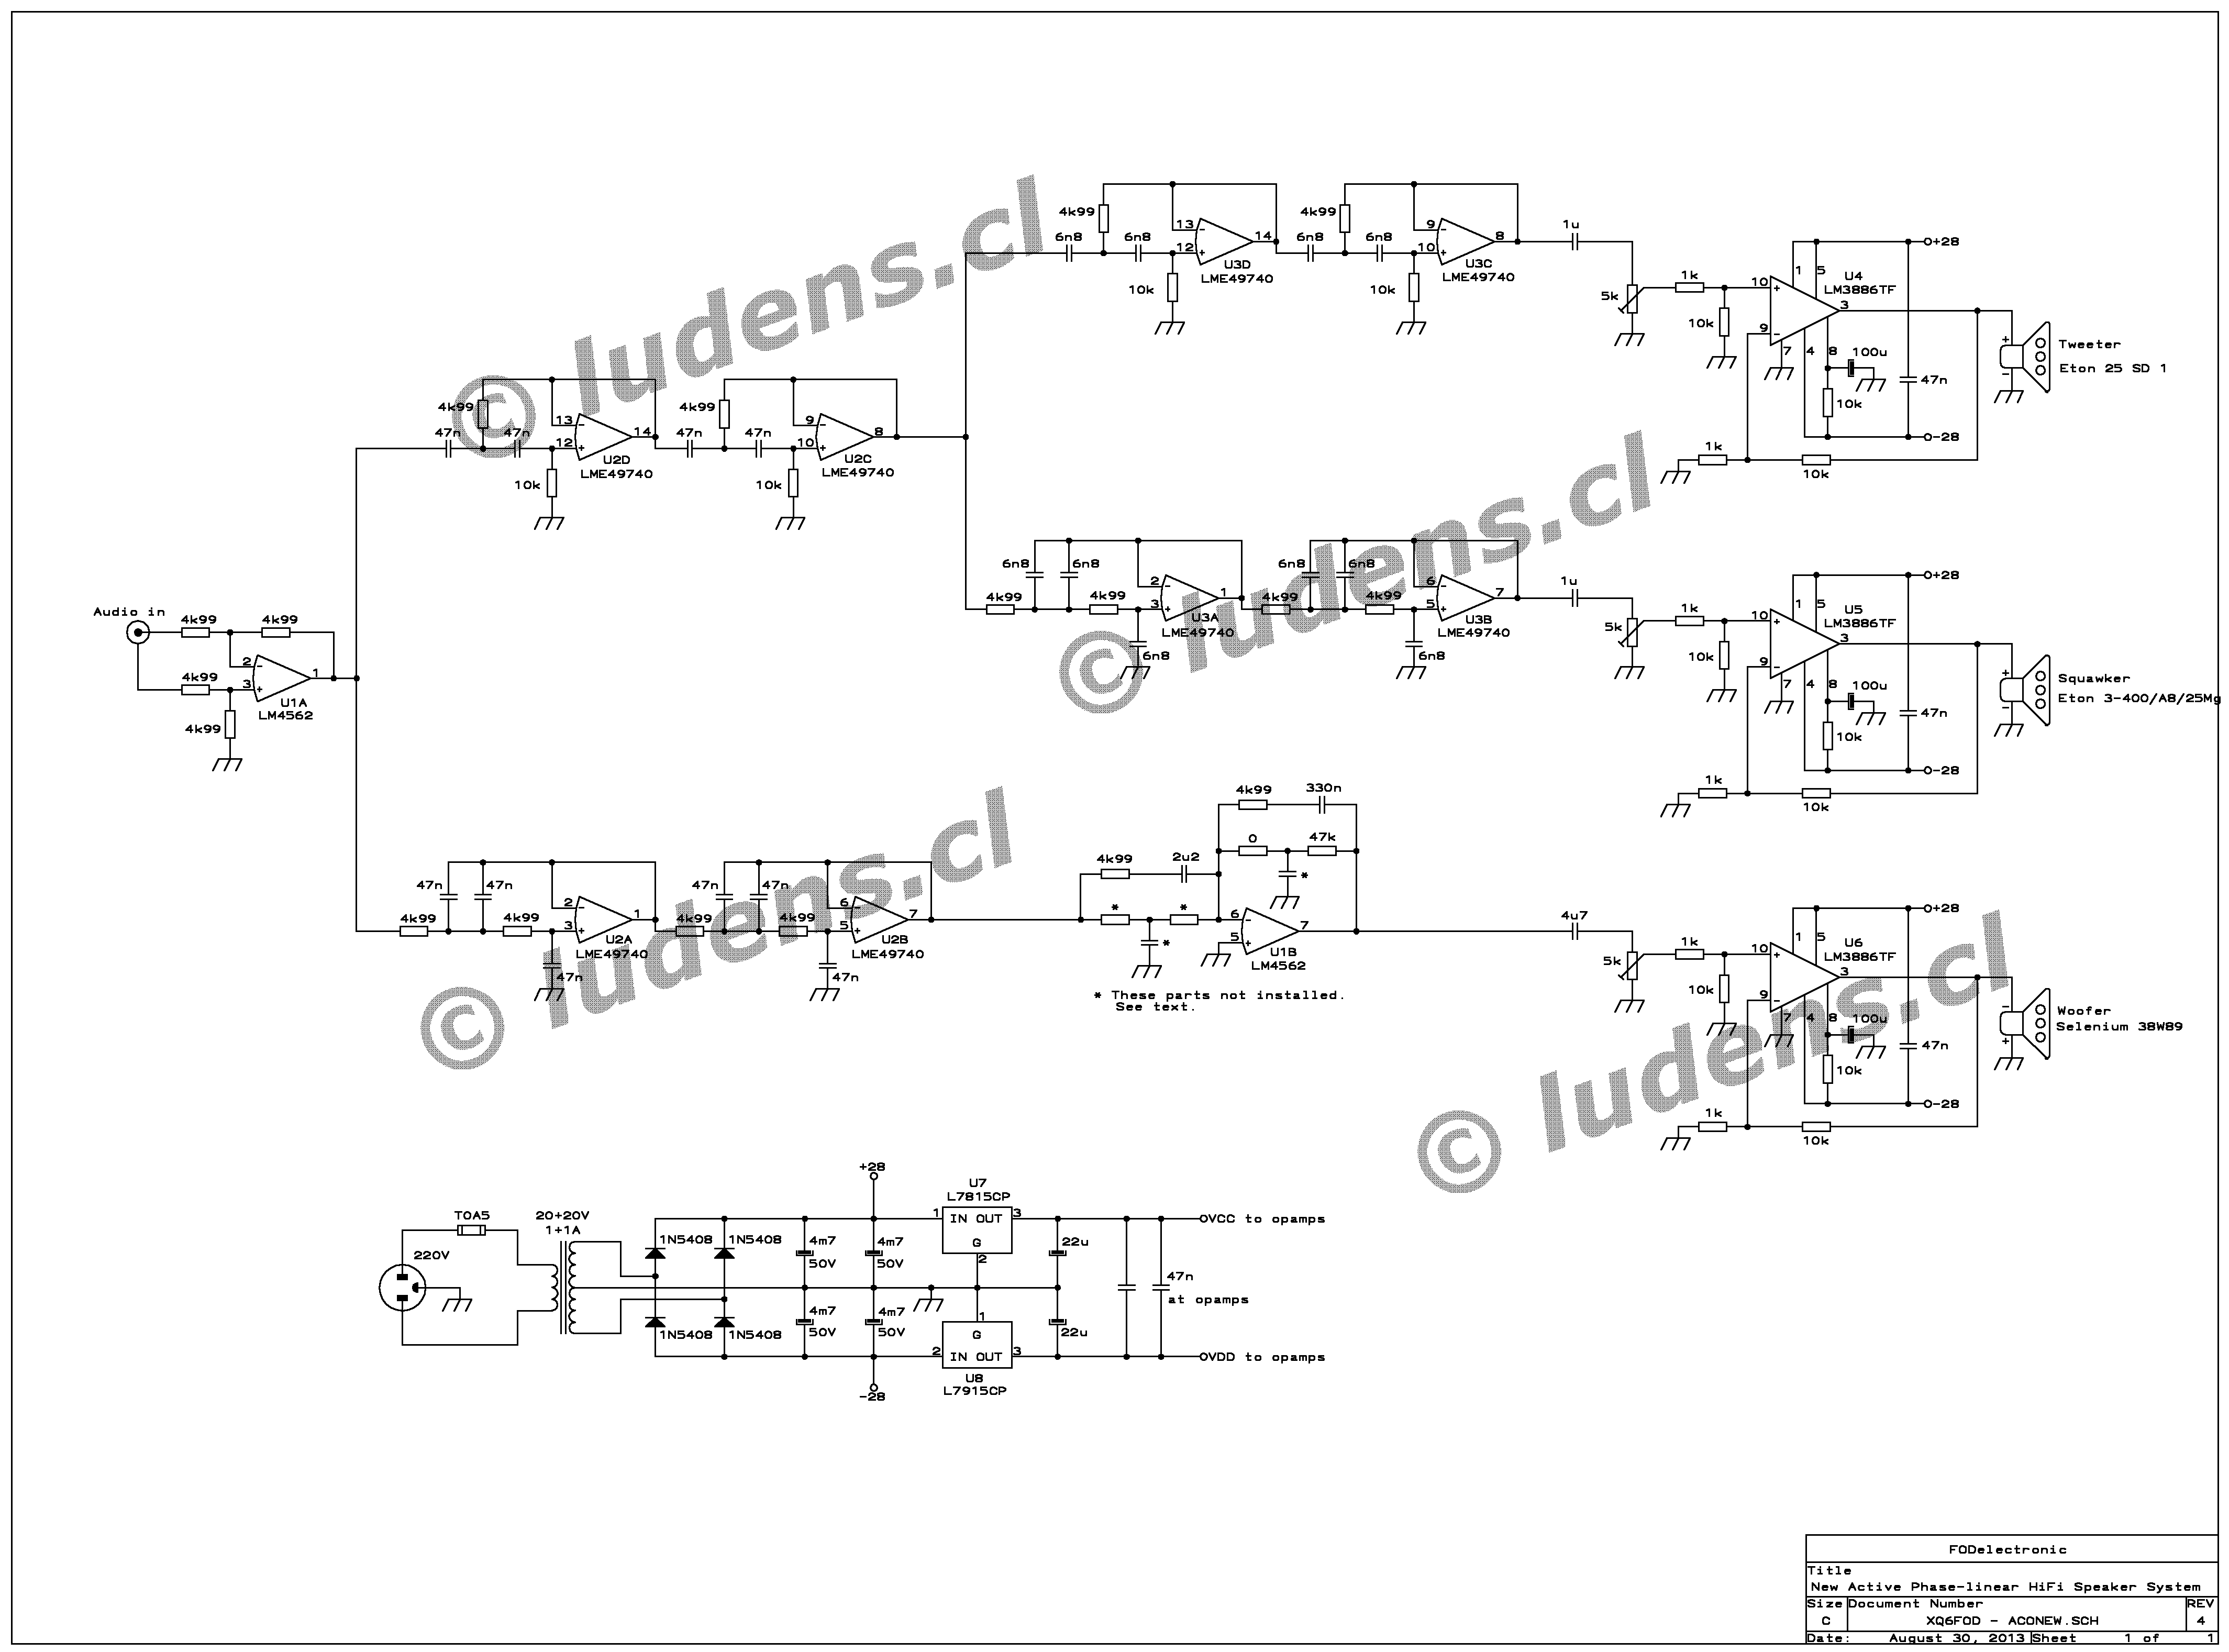 series speaker crossover wiring diagram 2005 grand cherokee radio circuit schematic diagrams jbl 4412 2 way with library